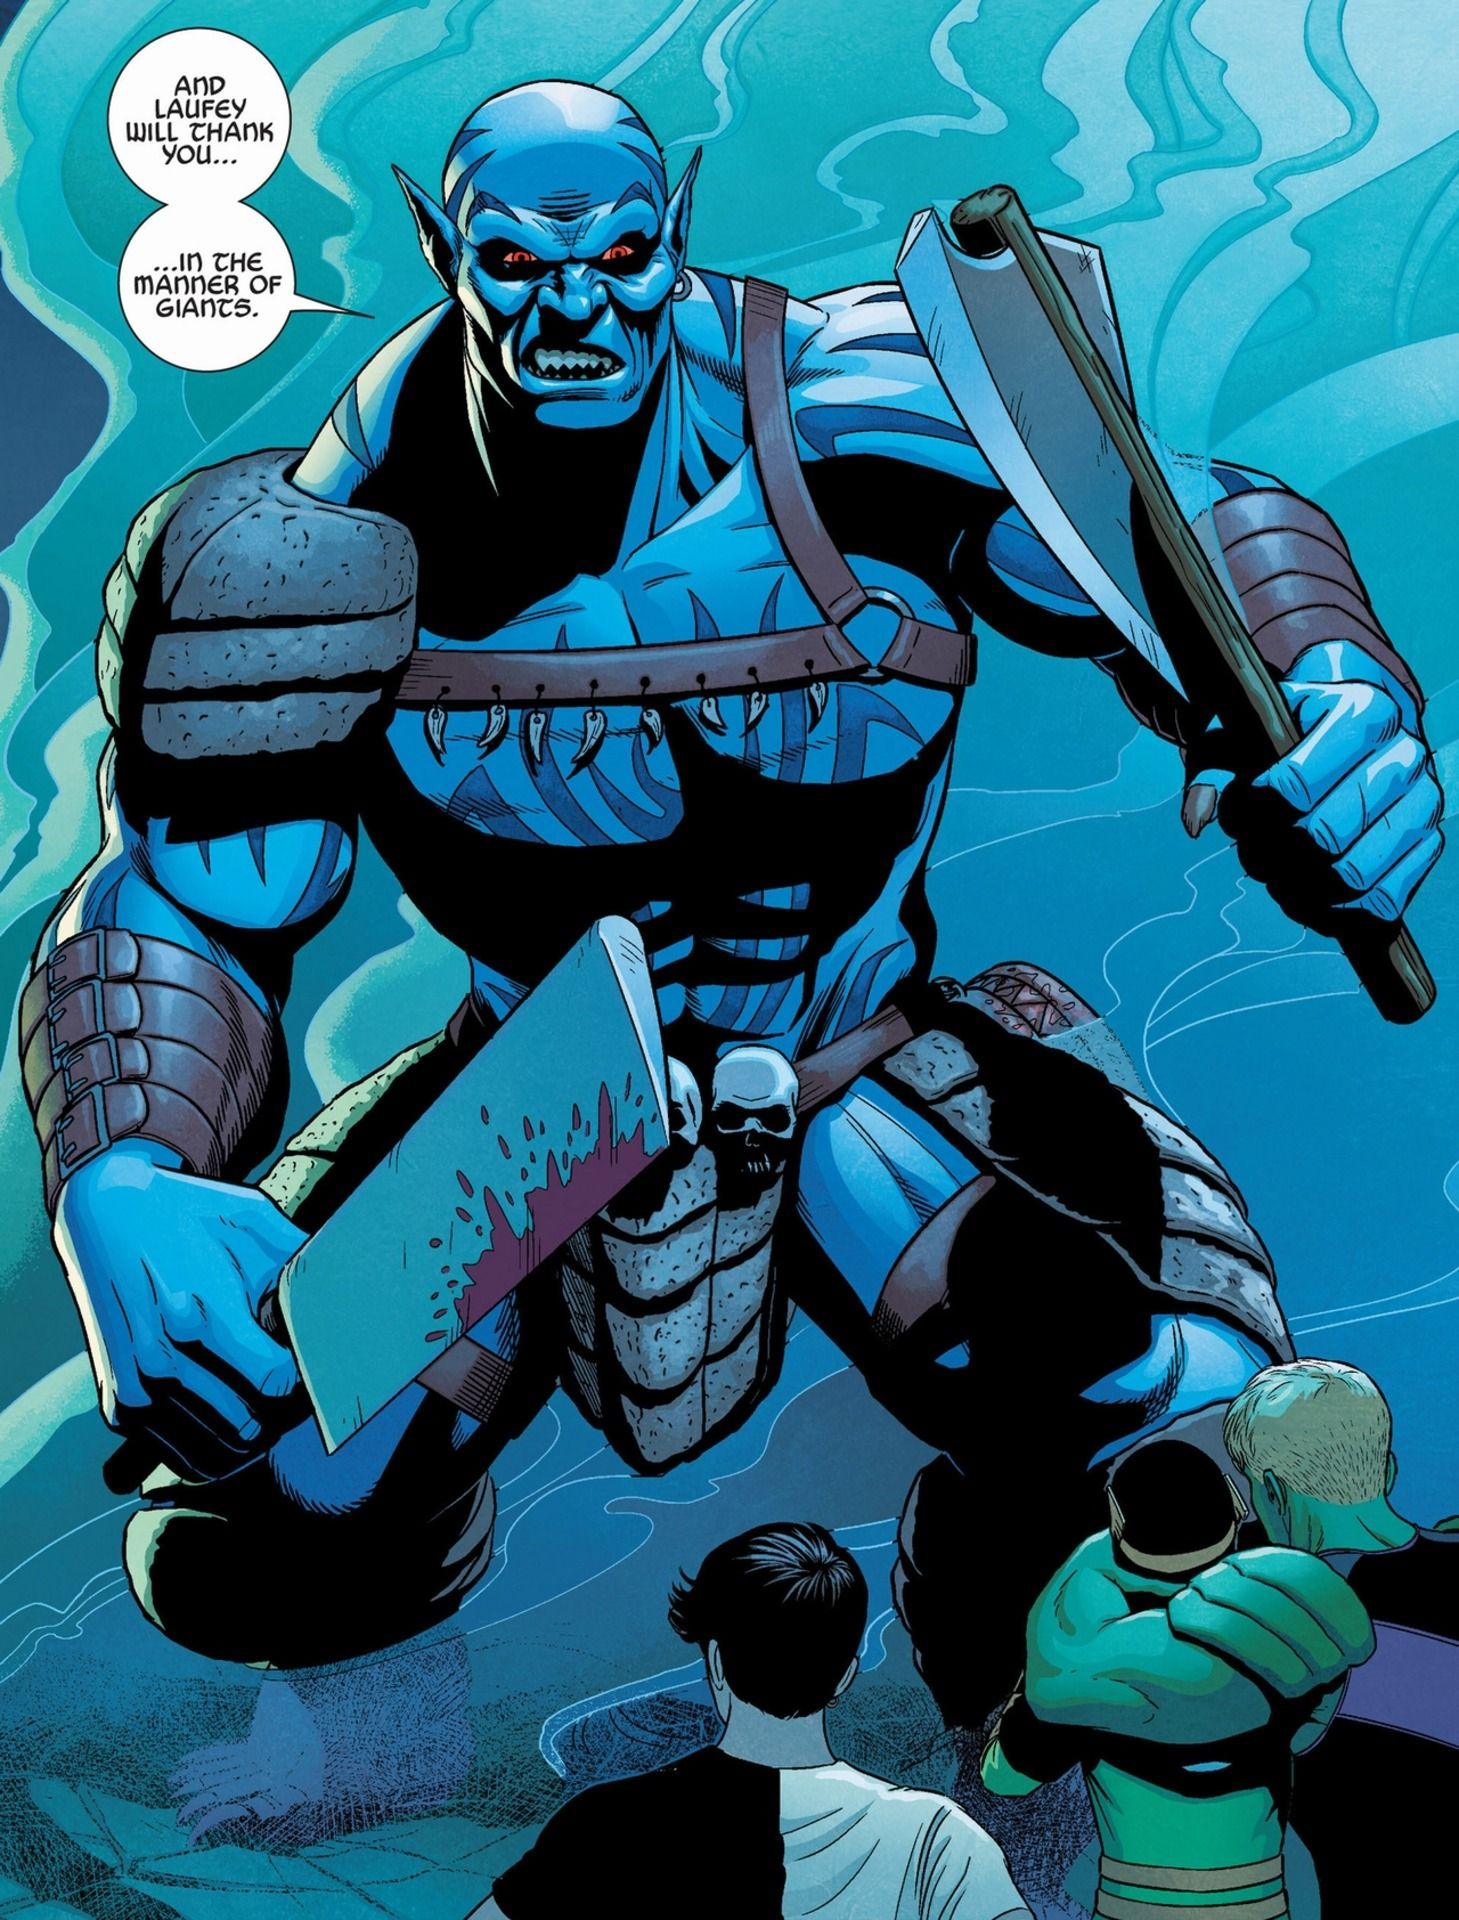 Laufey Is The Father Of Loki And King Of The Frost Giants Comic Books Art Comic Villains Marvel Villains